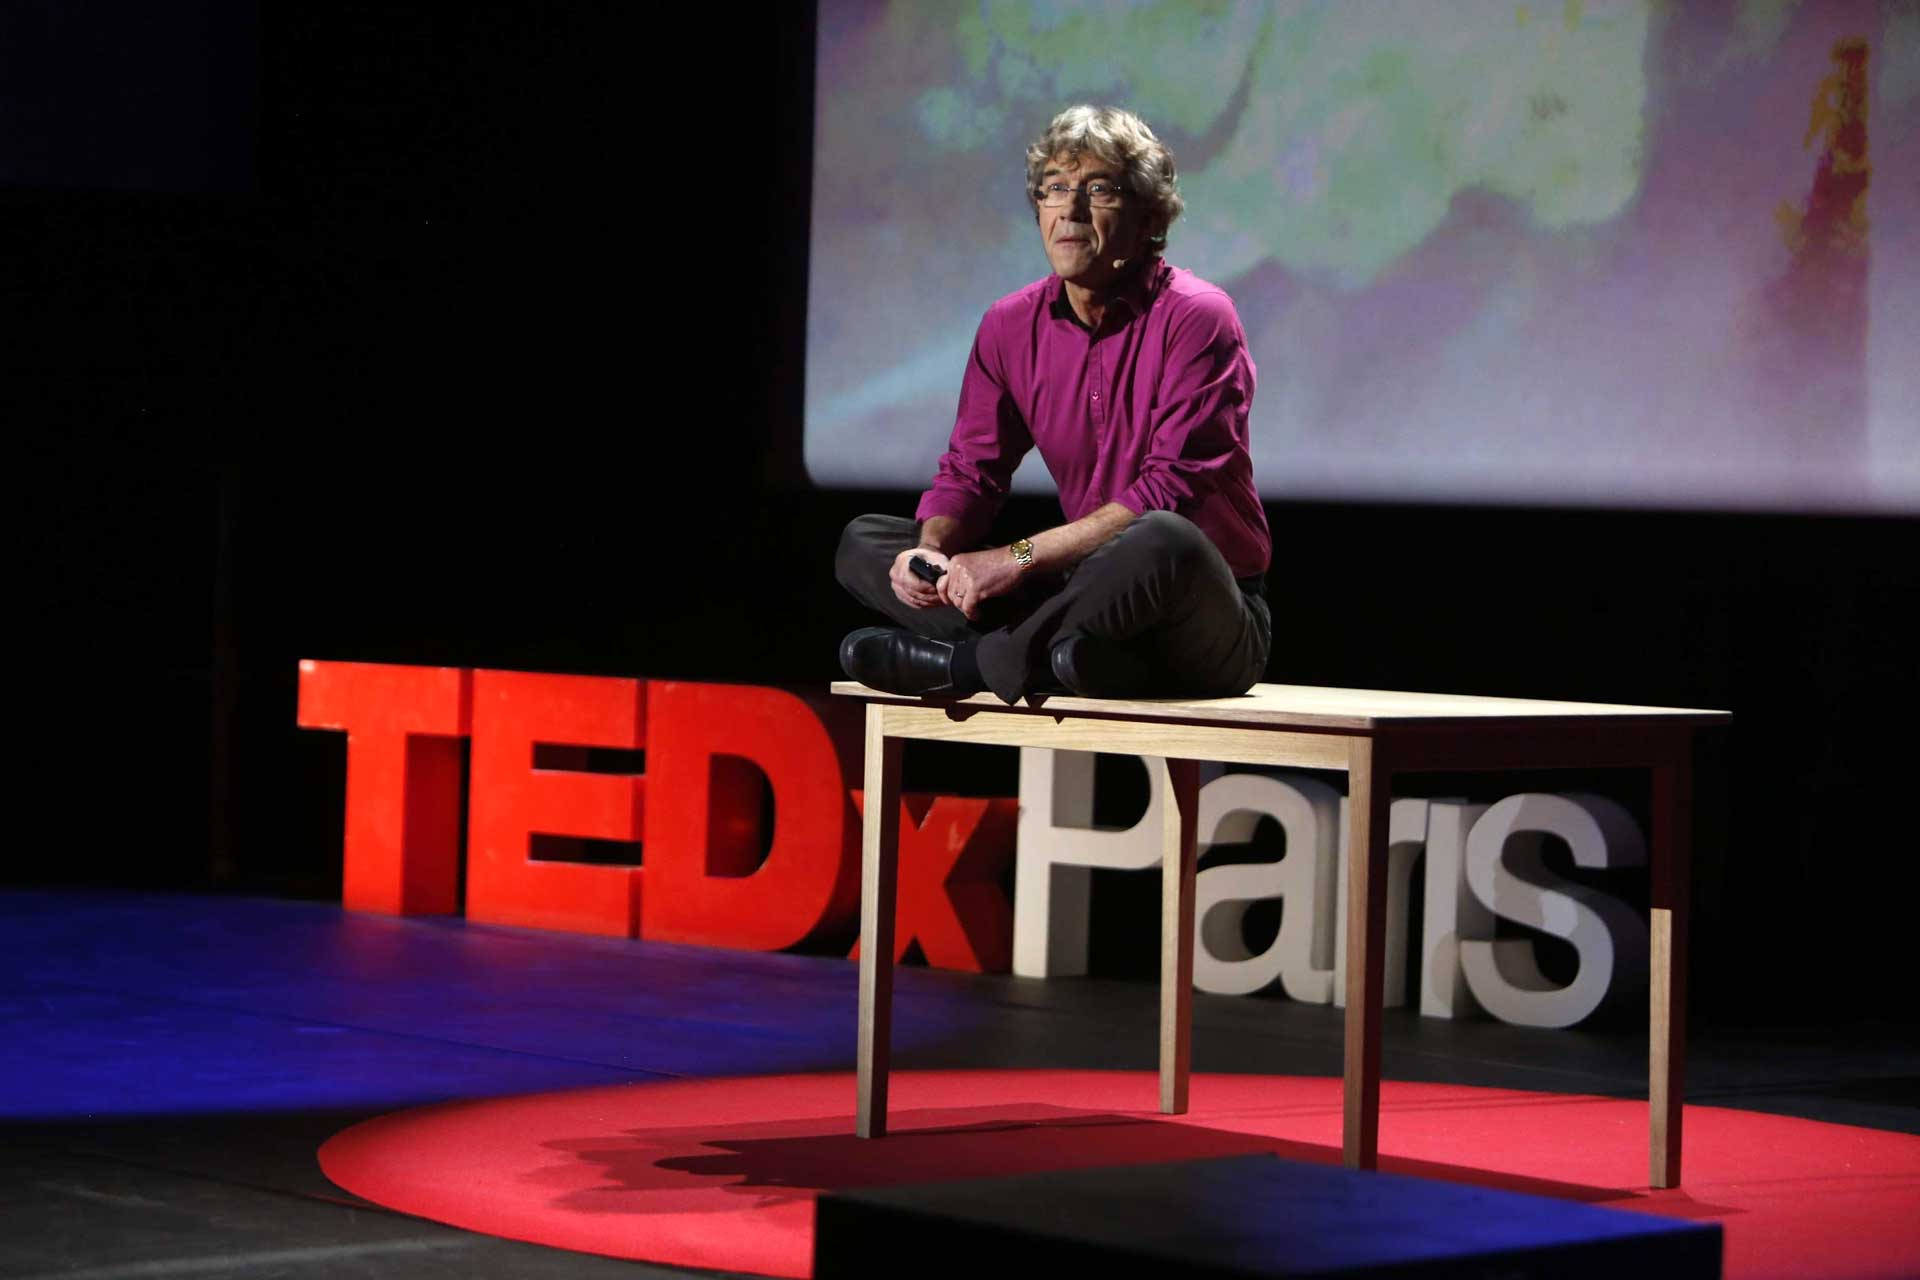 conference-TEDxParis-2013-4.jpg